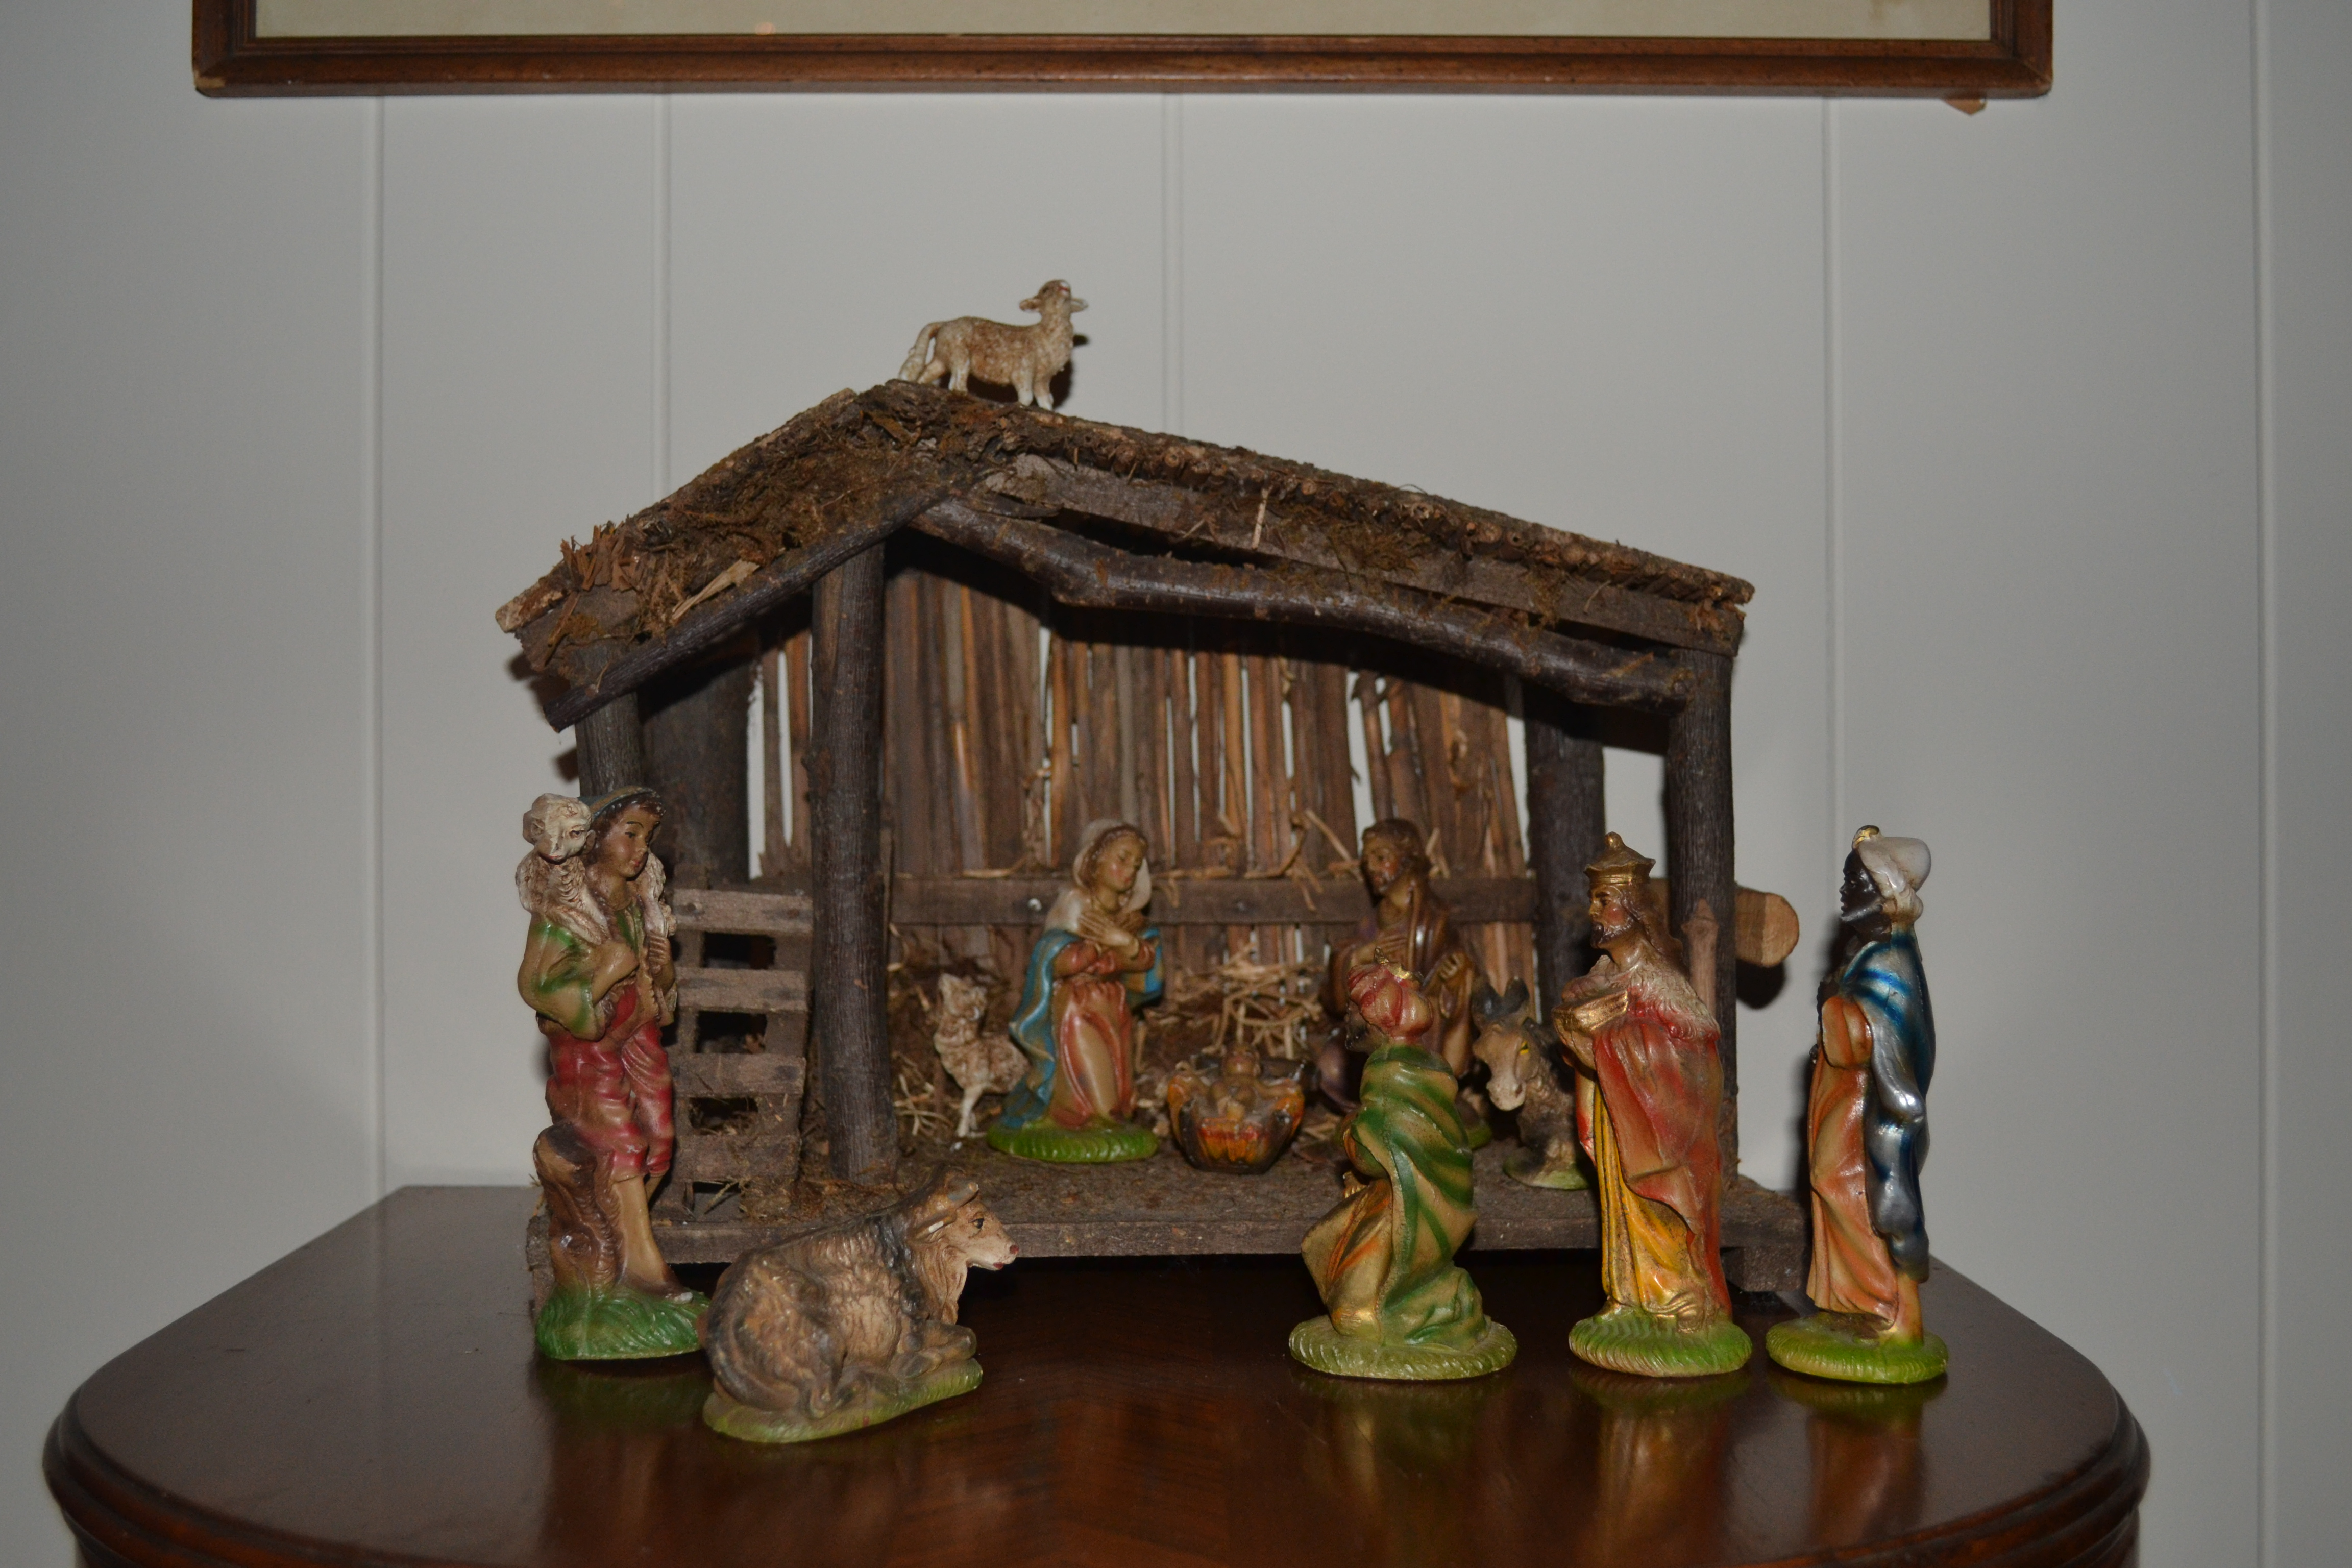 Home Interior Nativity Amazon Com 10 Piece Hand Painted  : DSC7151 from 165.227.82.154 size 4608 x 3072 jpeg 3889kB